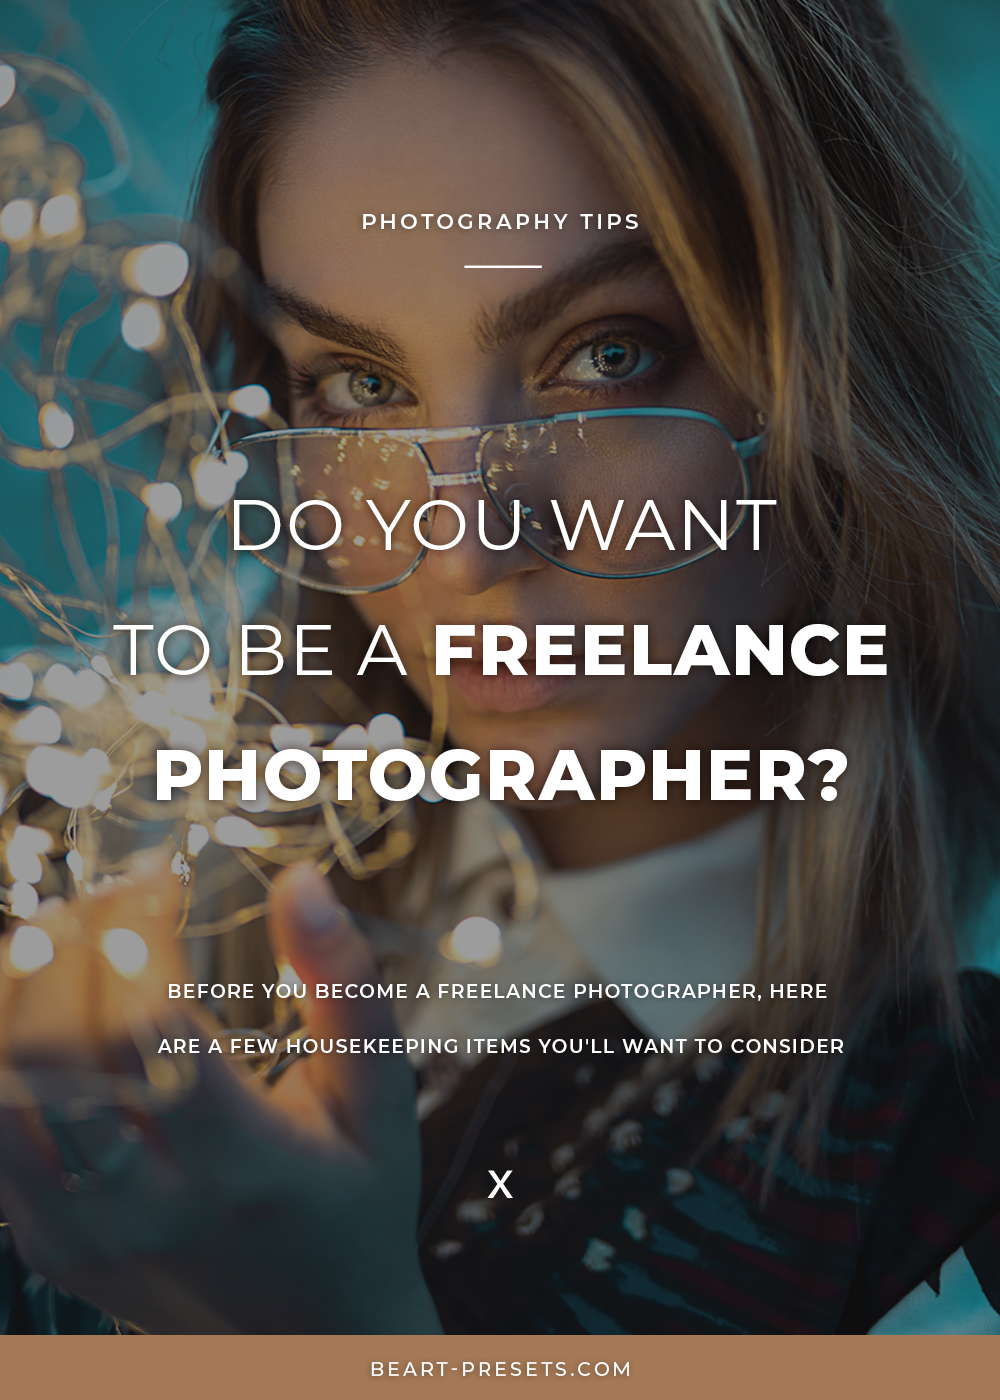 Do you want to be a freelance photographer?